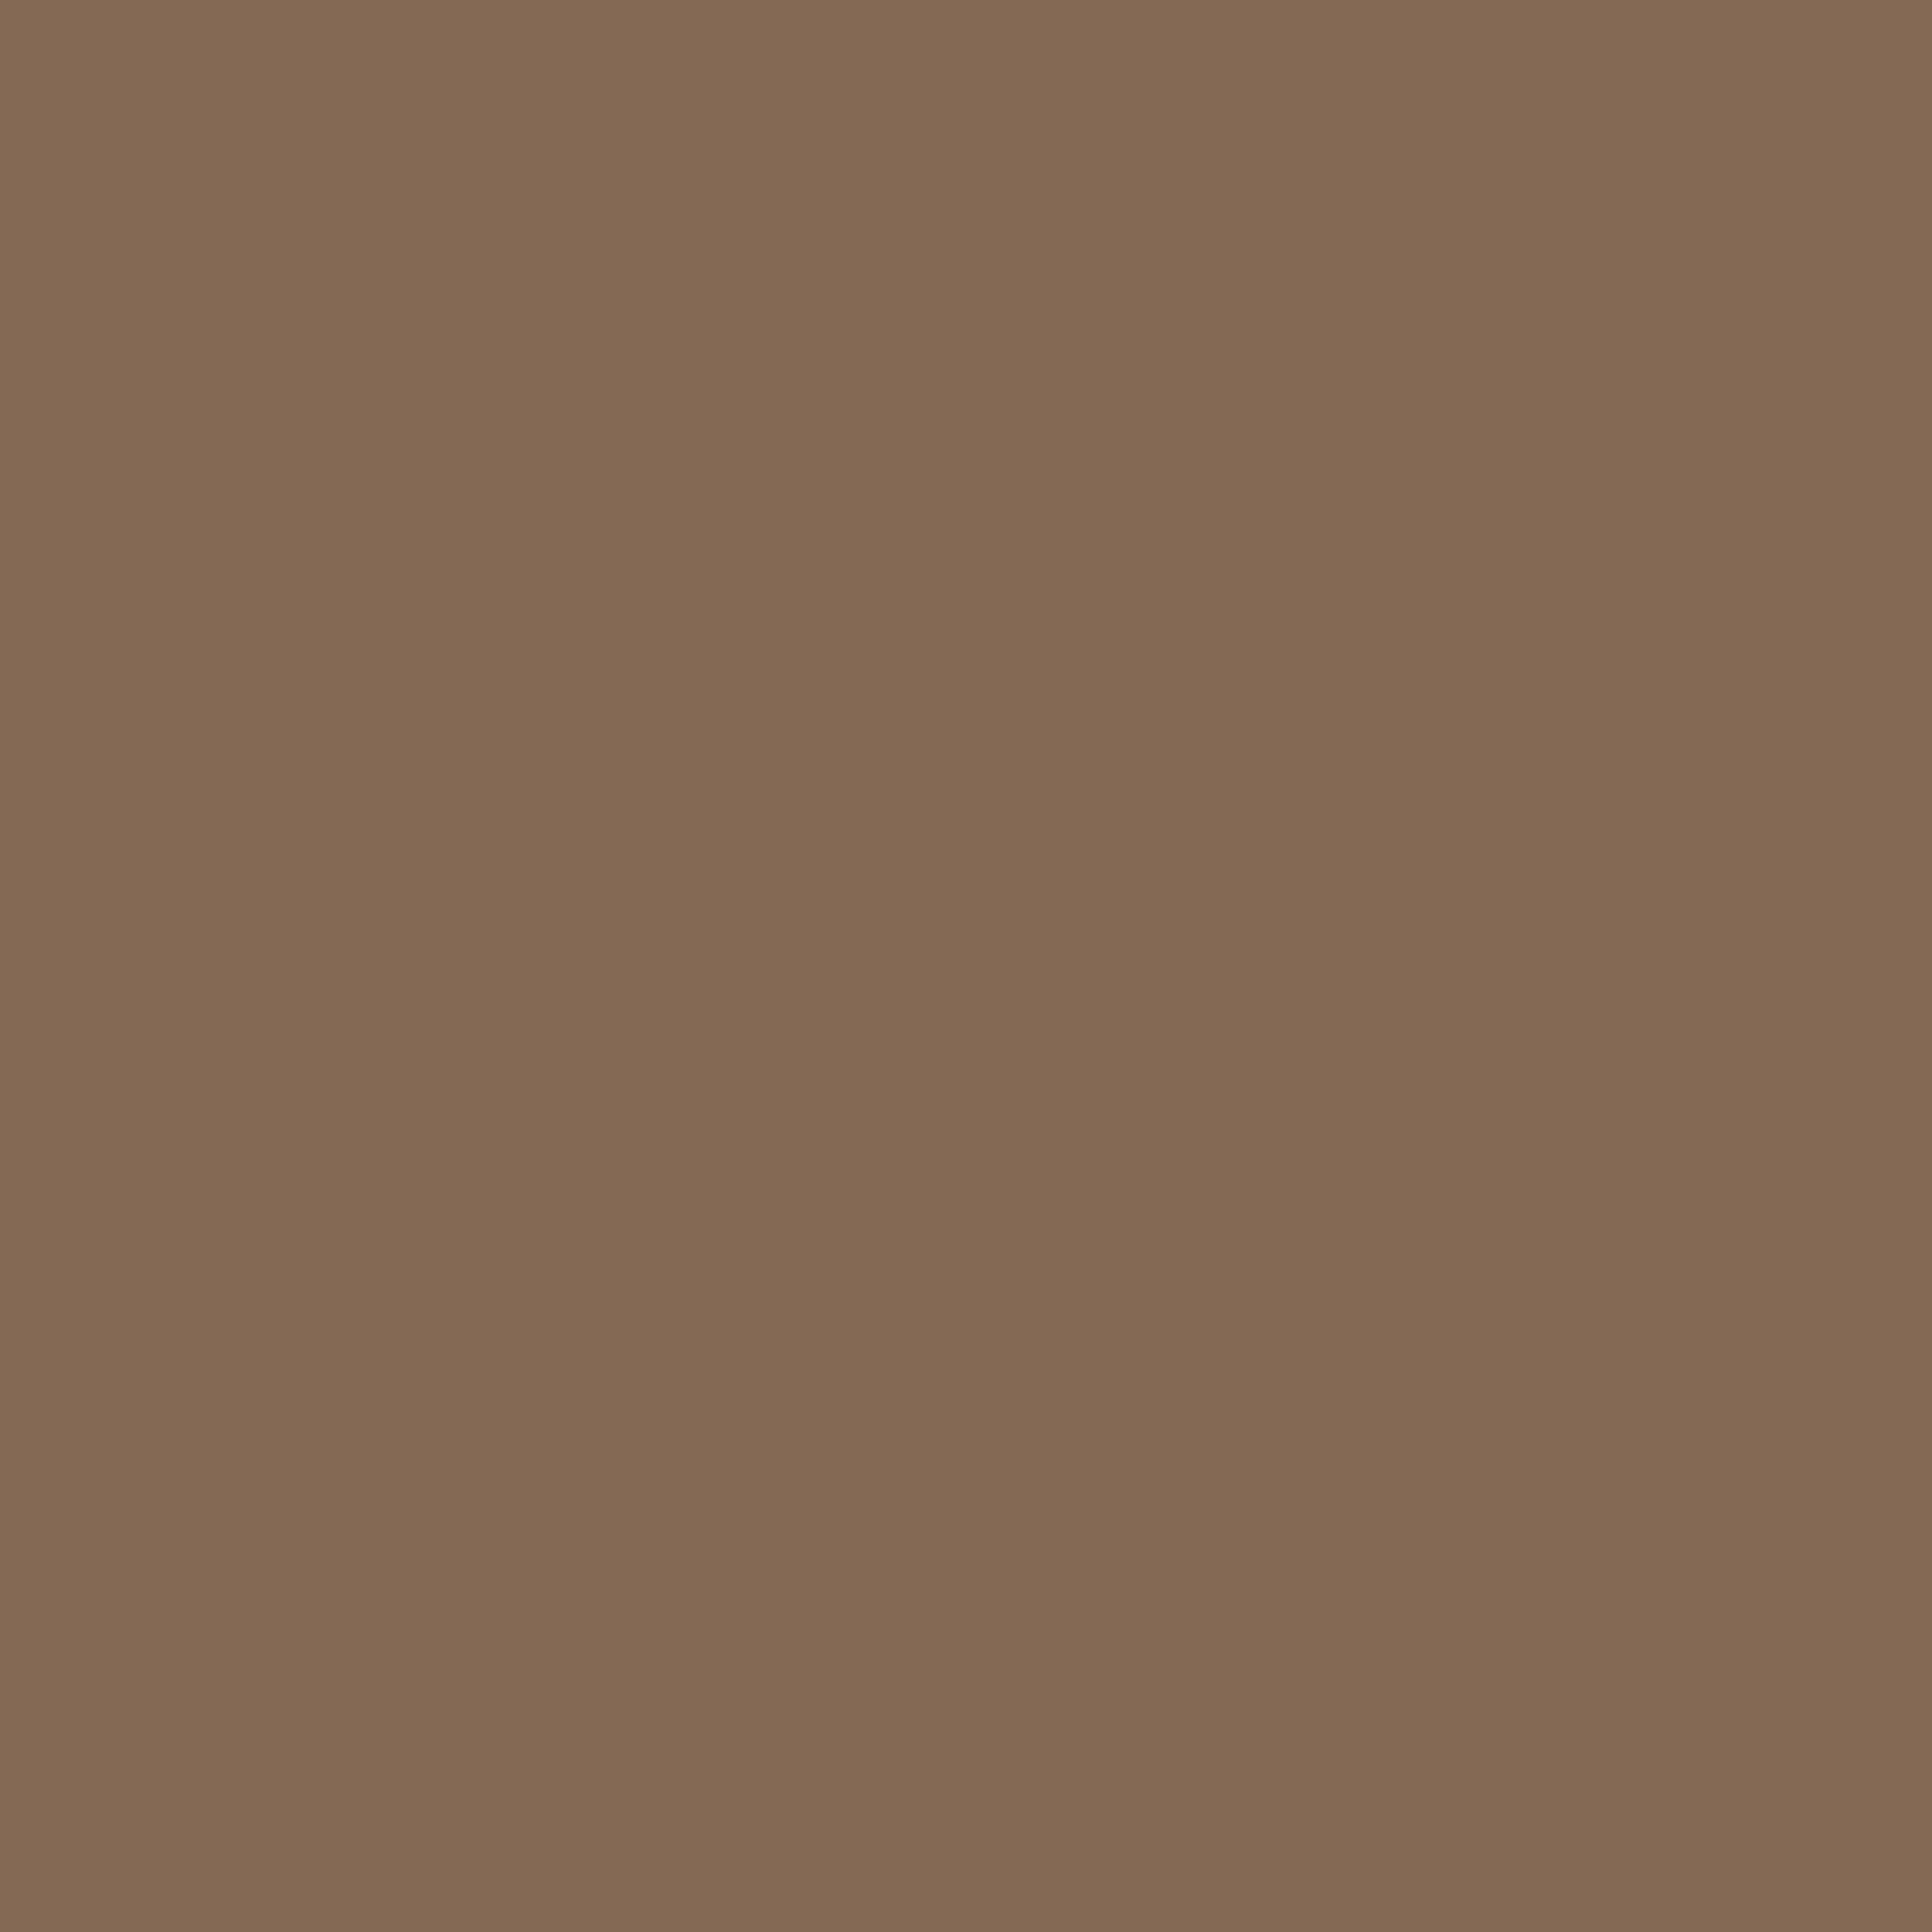 2048x2048 Pastel Brown Solid Color Background